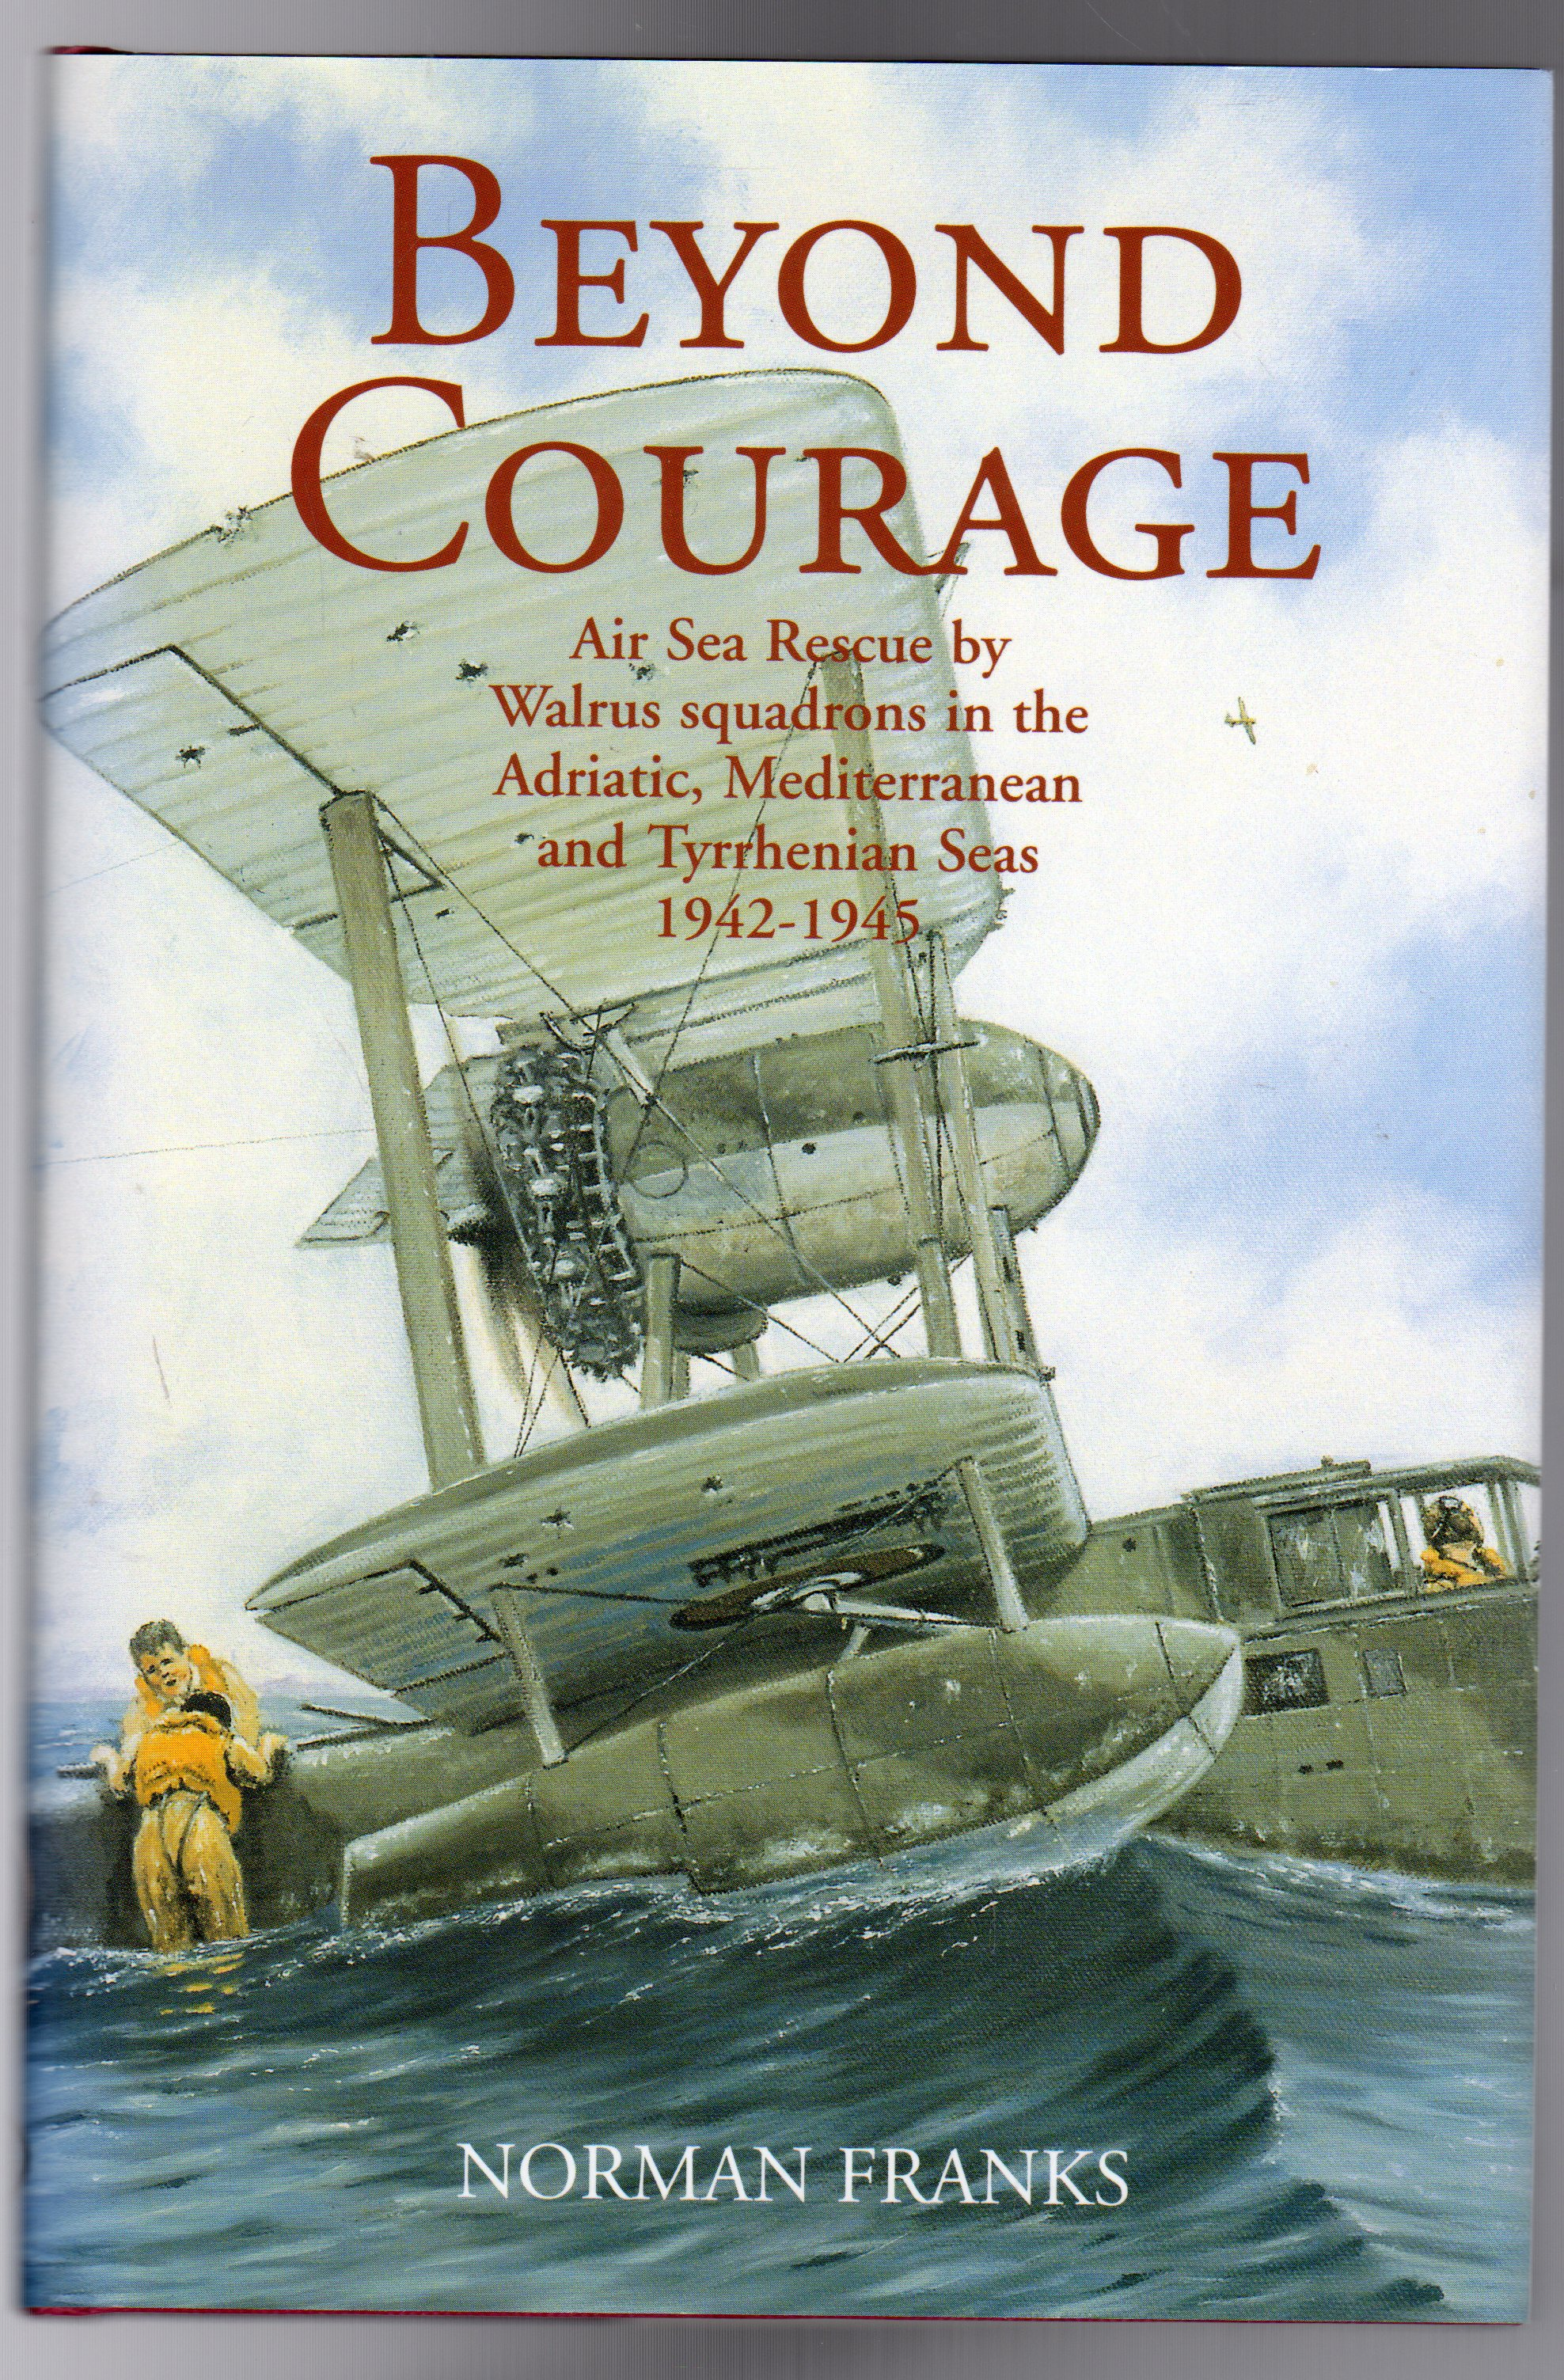 Image for Beyond Courage : Air Sea Rescue by Walrus Squadrons in the Adriatic, Mediterranean and Tyrrhenian Seas 1942-1945